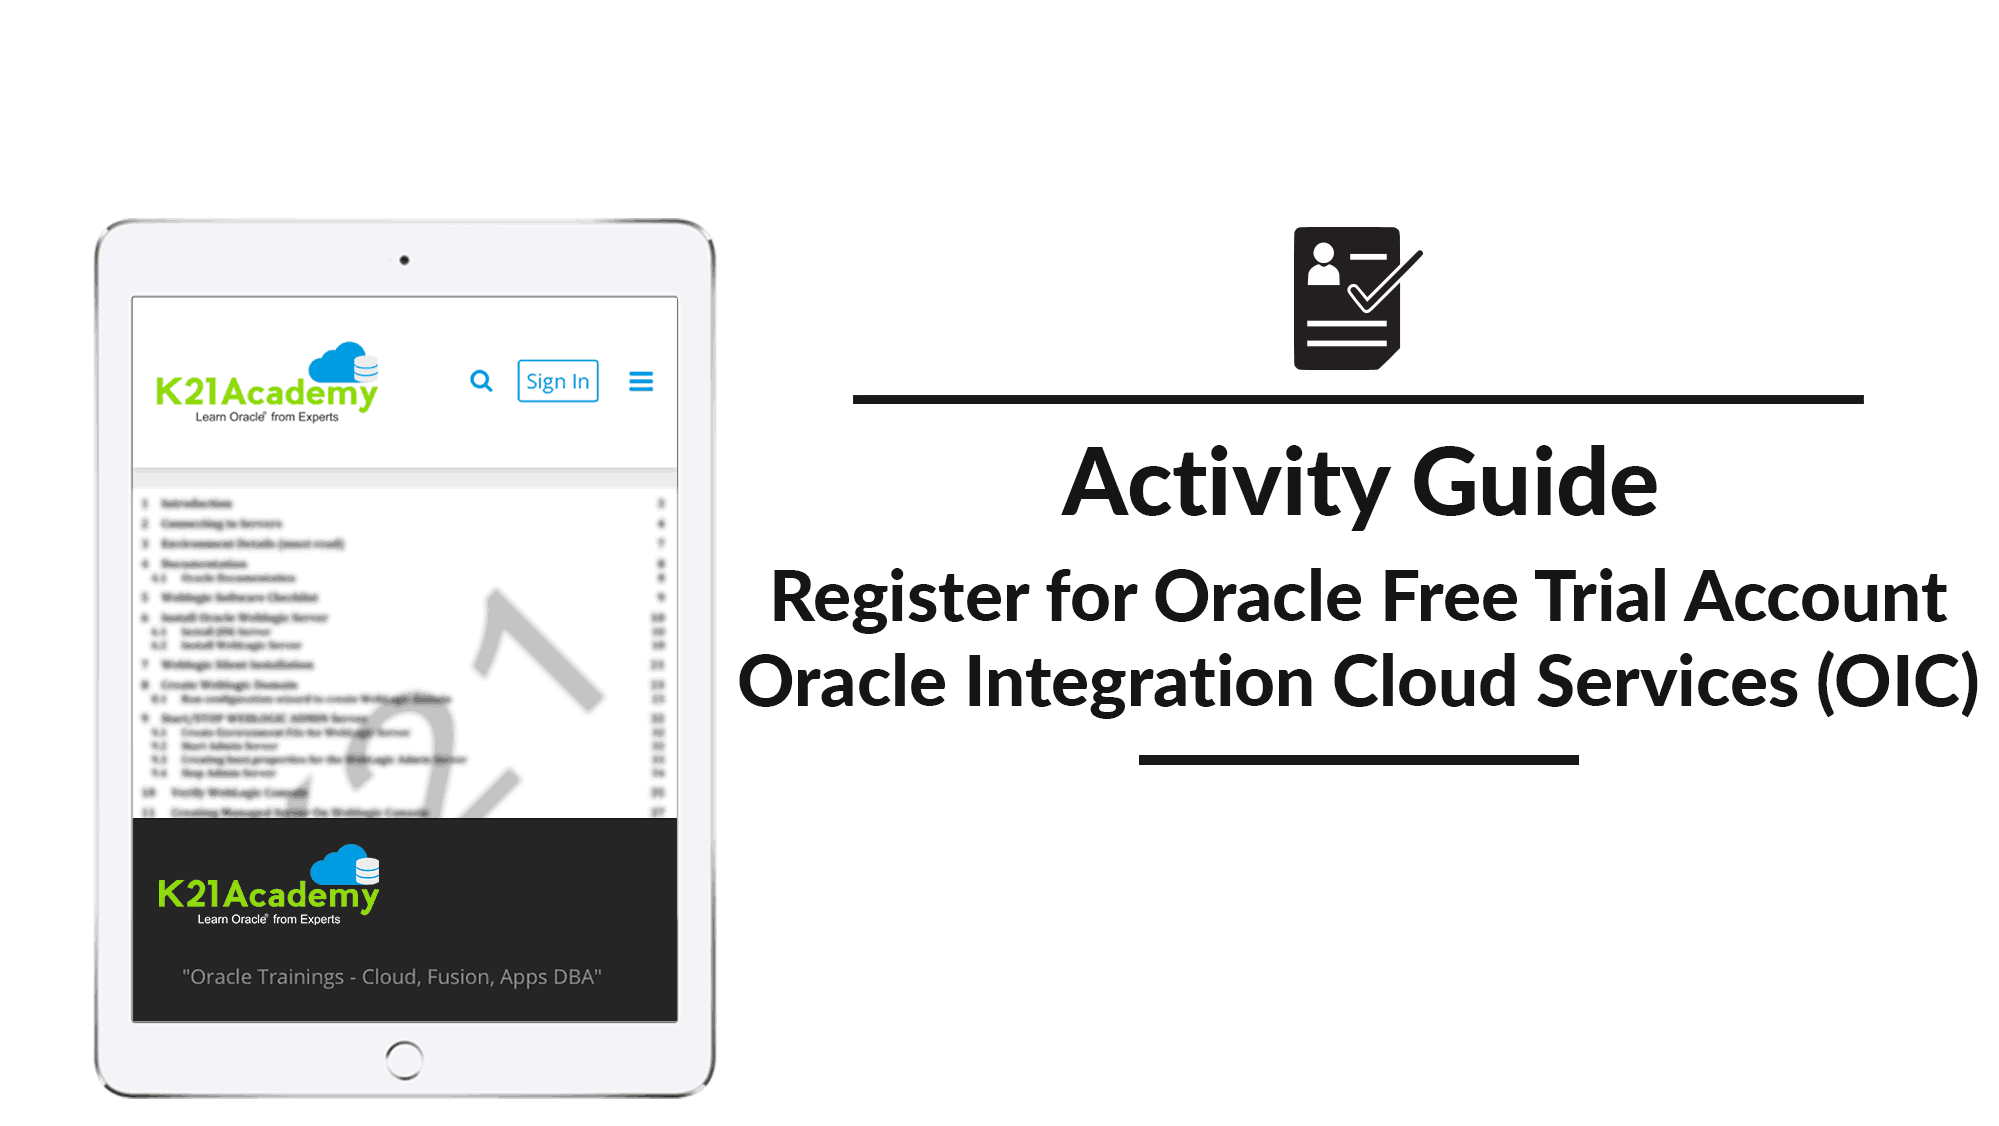 Register for Oracle Free Trial Account